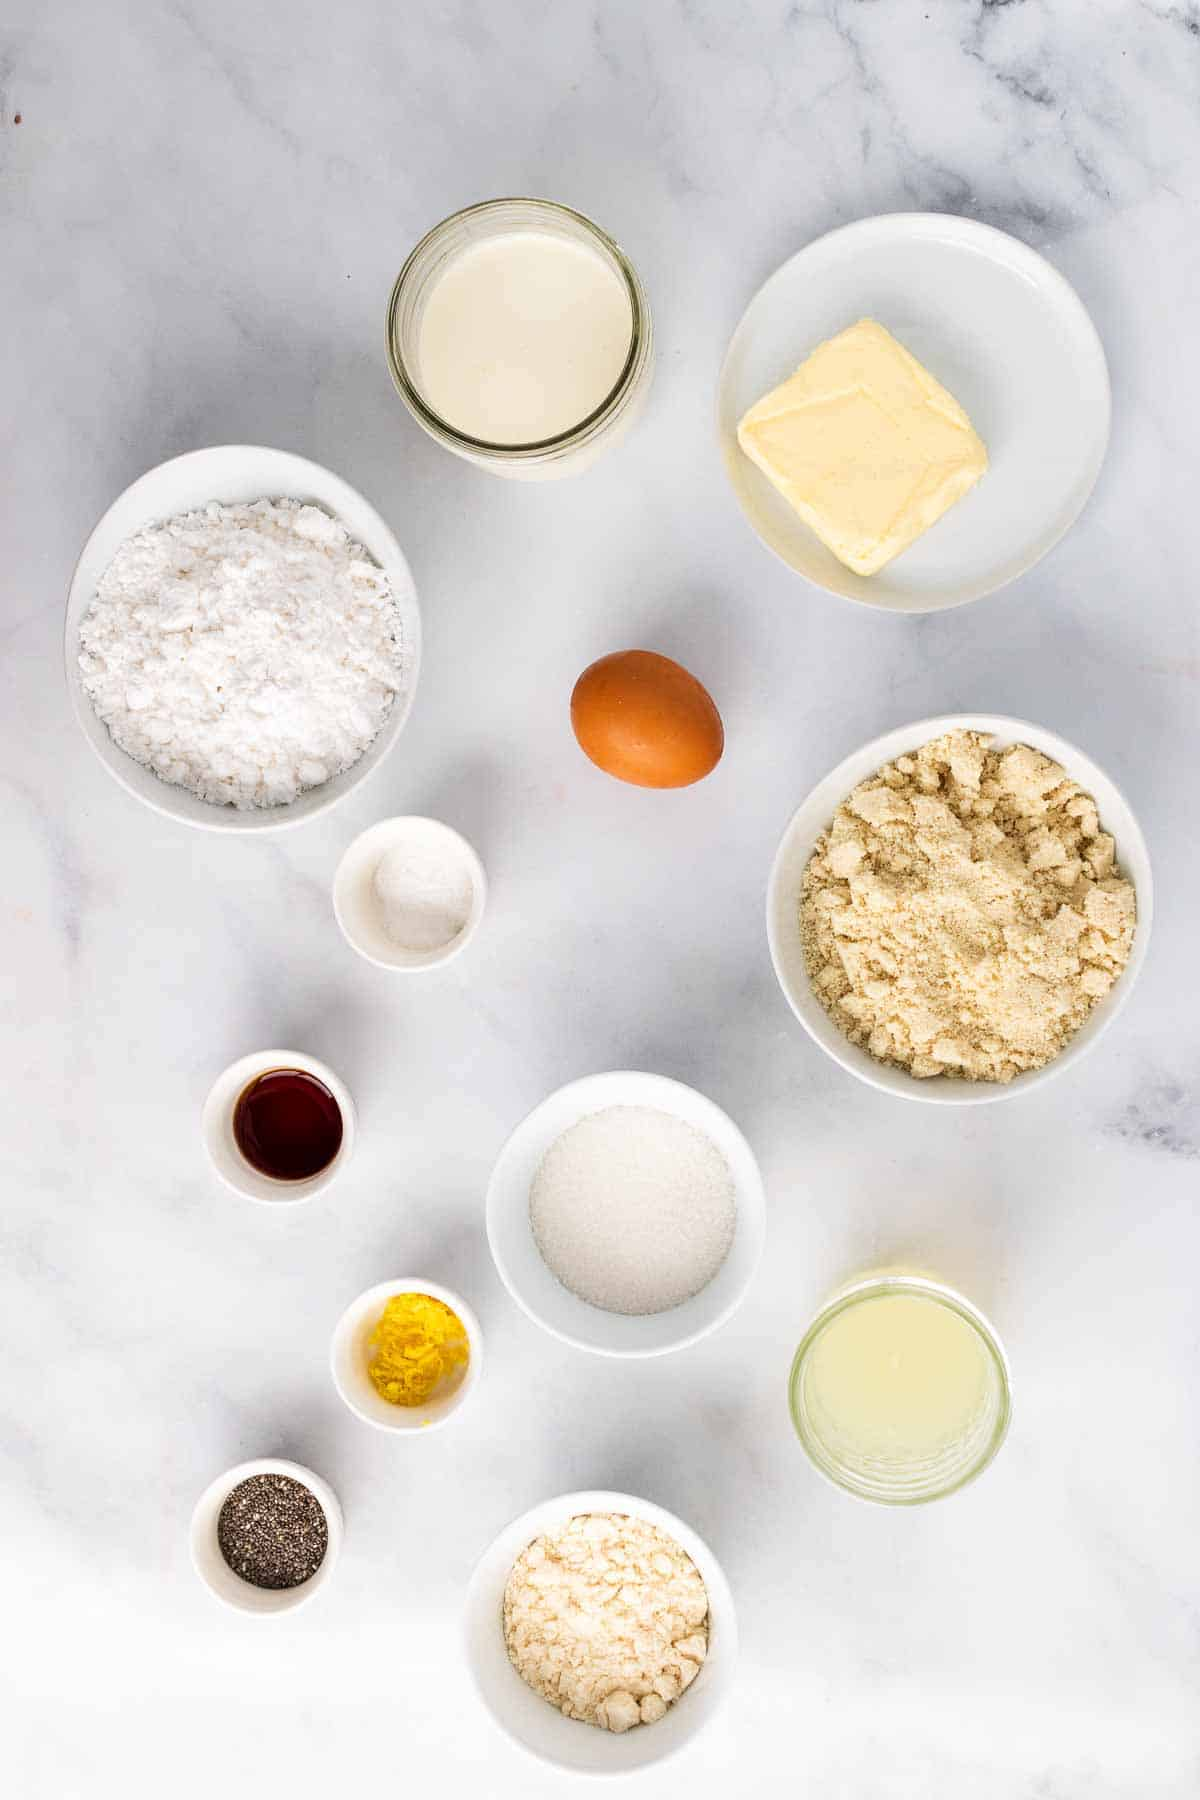 Ingredients for recipe in separate bowls and ramekins, as seen from above